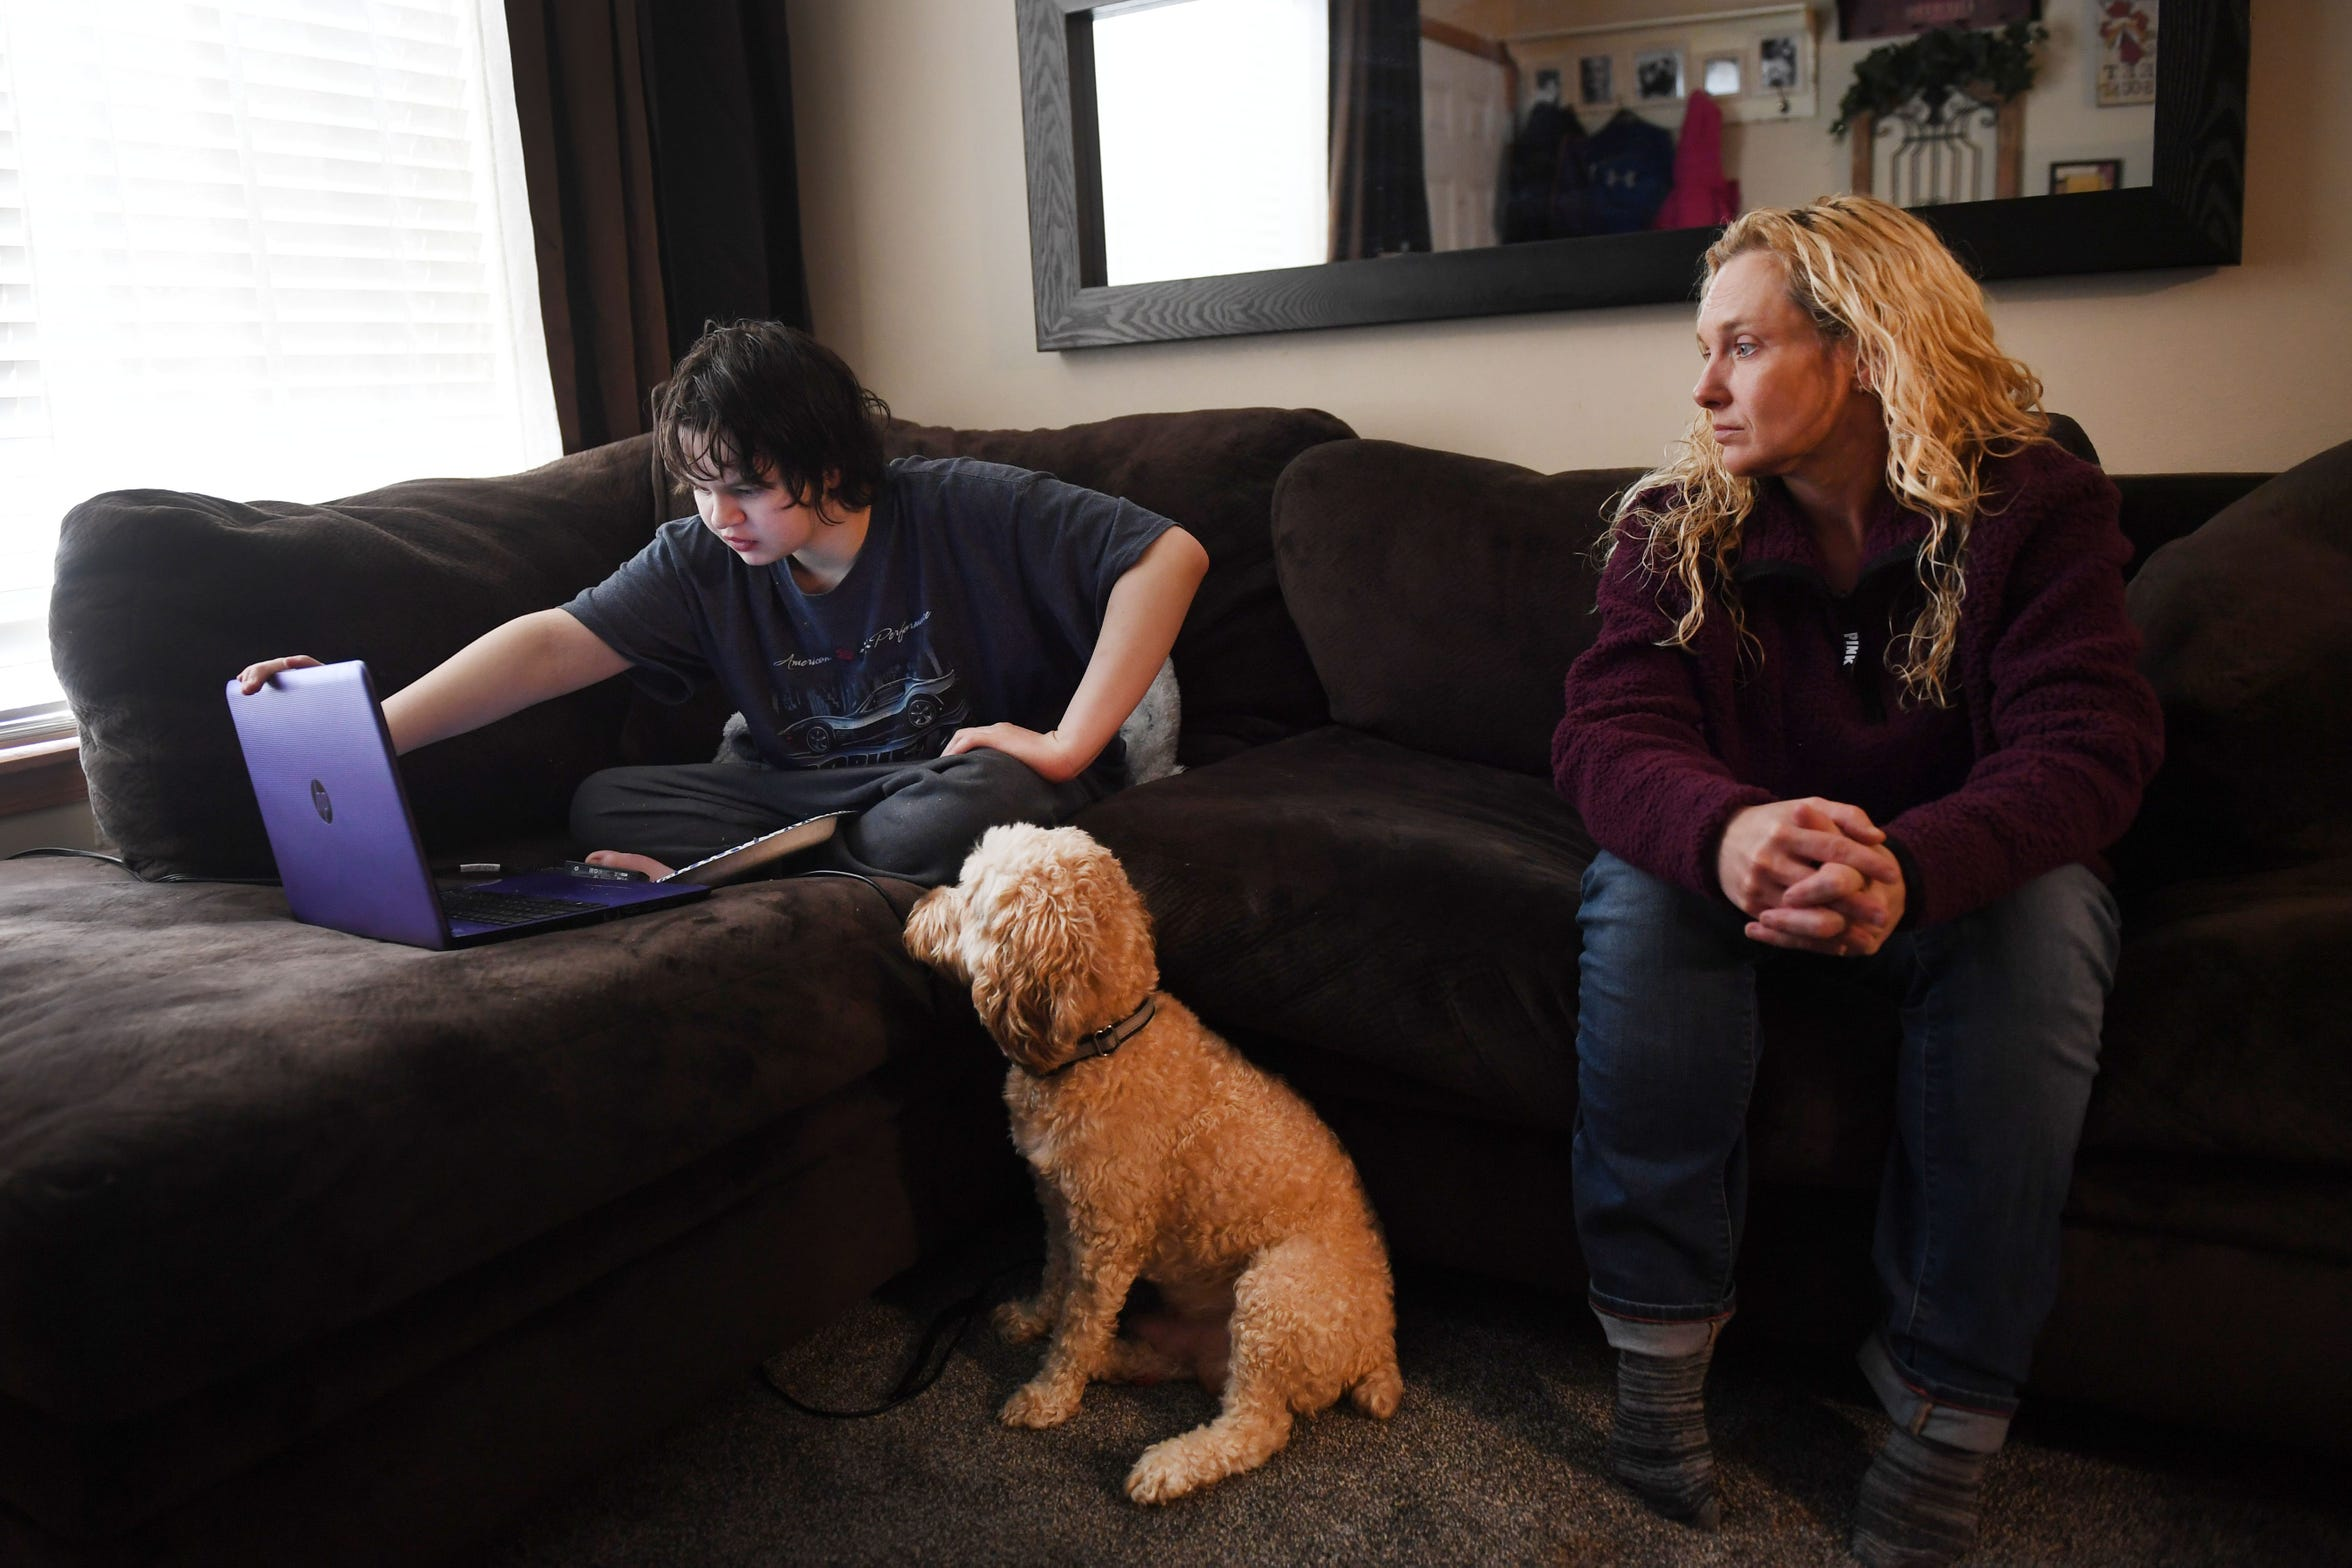 Nick Johnson talks about being home from the HSC, Human Services Center, a state psychiatric hospital in Yankton Tuesday, Feb. 5, with his mom Beverly Johnson at their home in Sioux Falls. Nick's dog, Jasper, hasn't left Nick's side since he got home. Nick has been battling several mental health issues for the past couple of years. Beverly Johnson, Nick's mom, advocates for better children's mental health in the state.